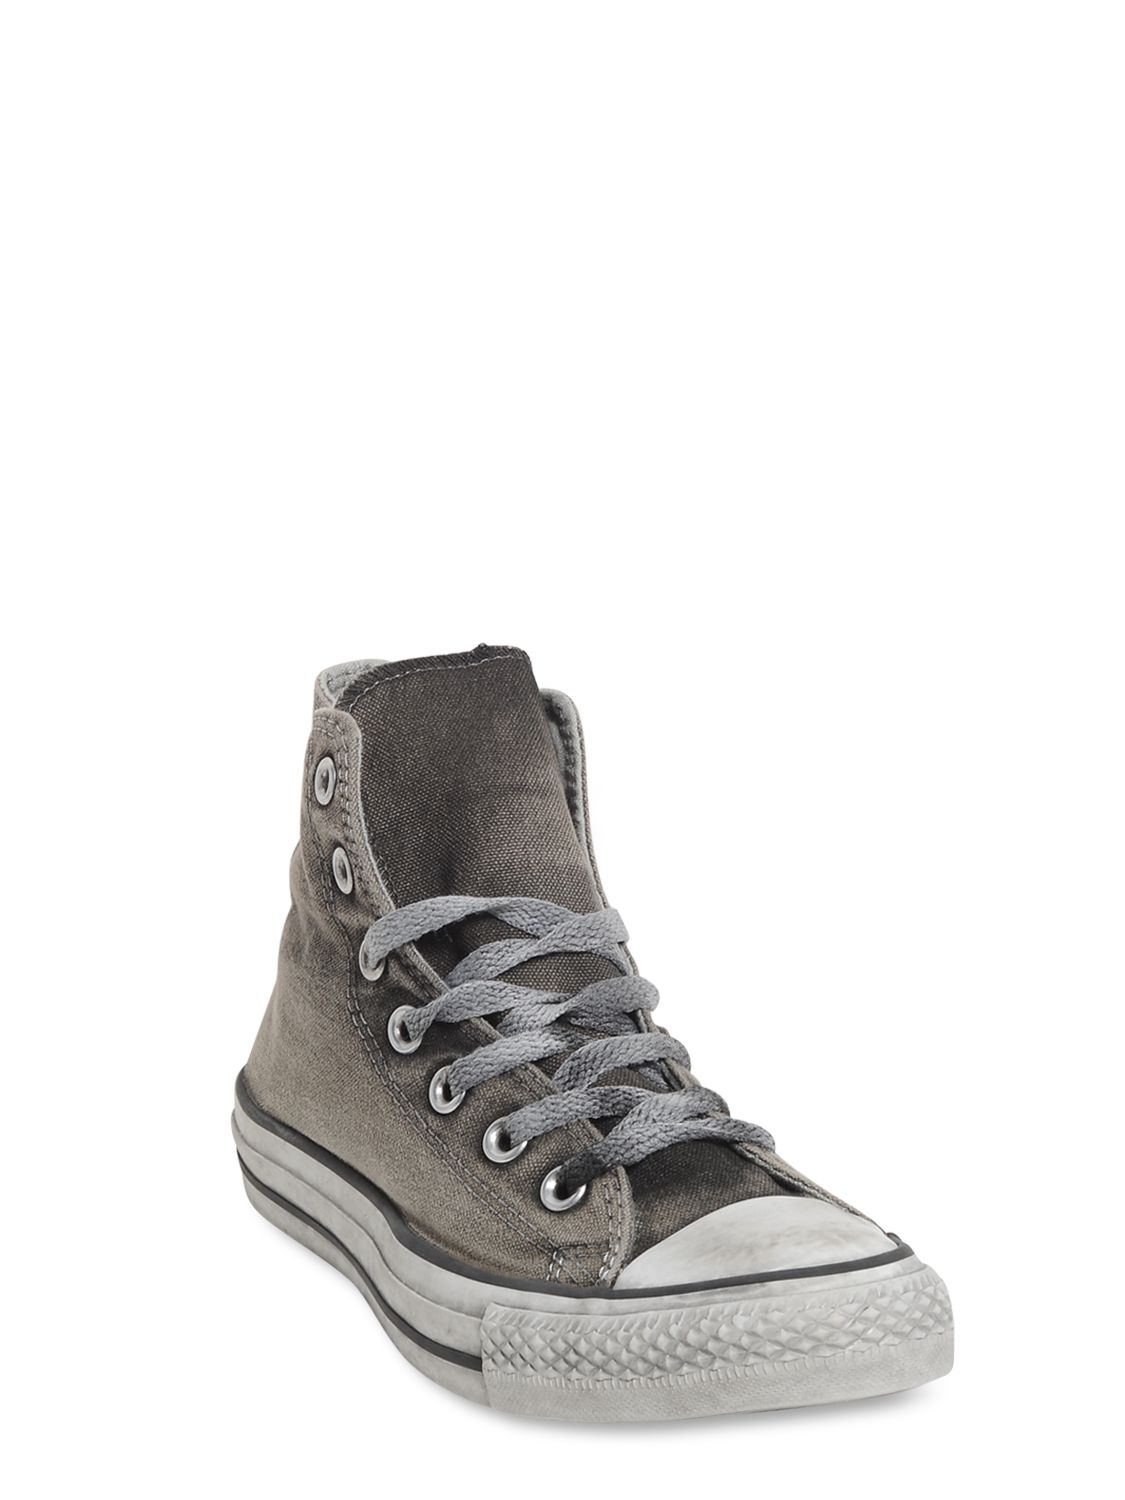 converse limited edition all stars sneakers in khaki for. Black Bedroom Furniture Sets. Home Design Ideas